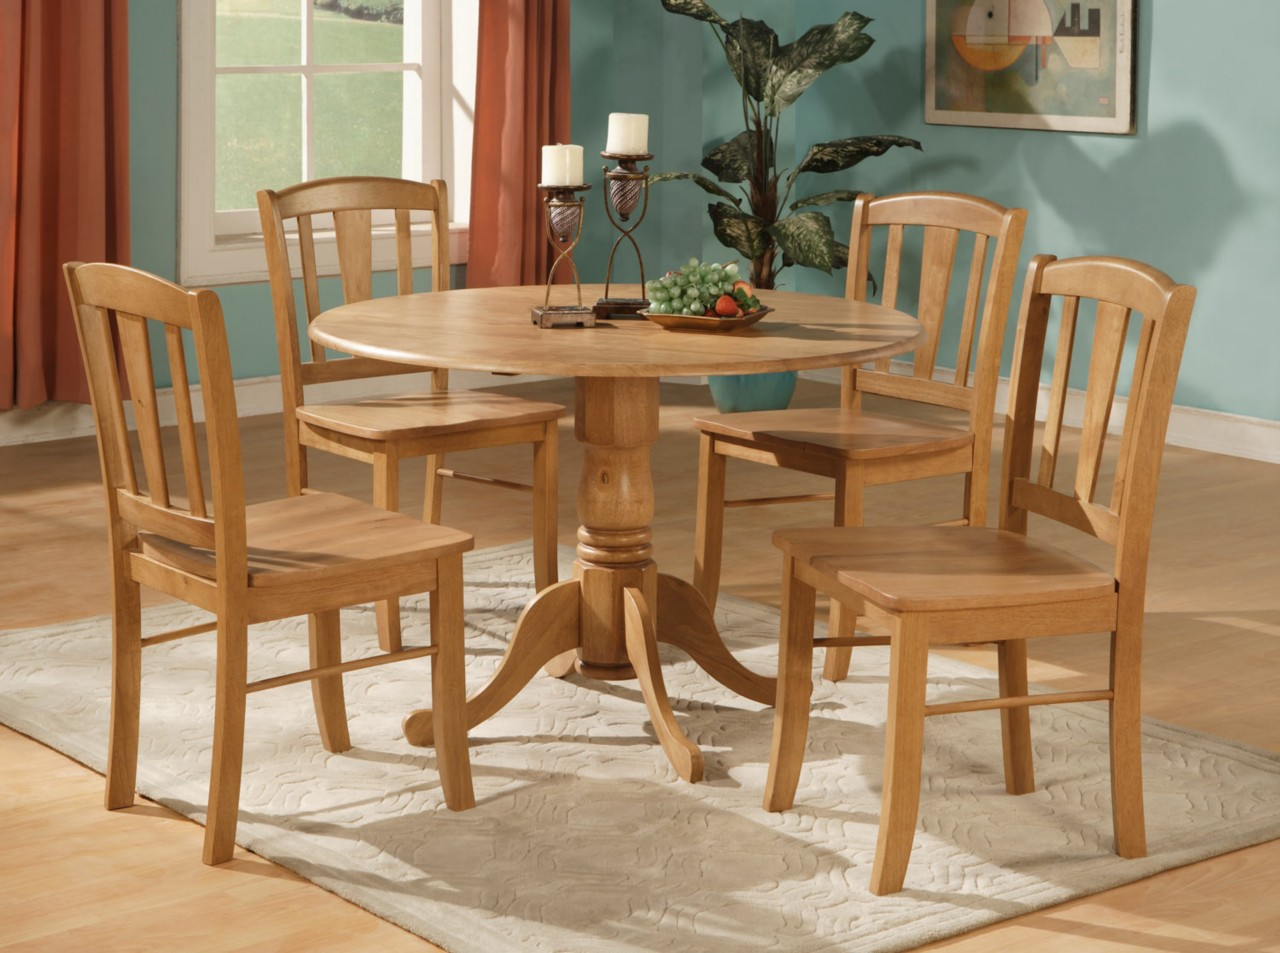 Round kitchen table and chairs Photo - 4